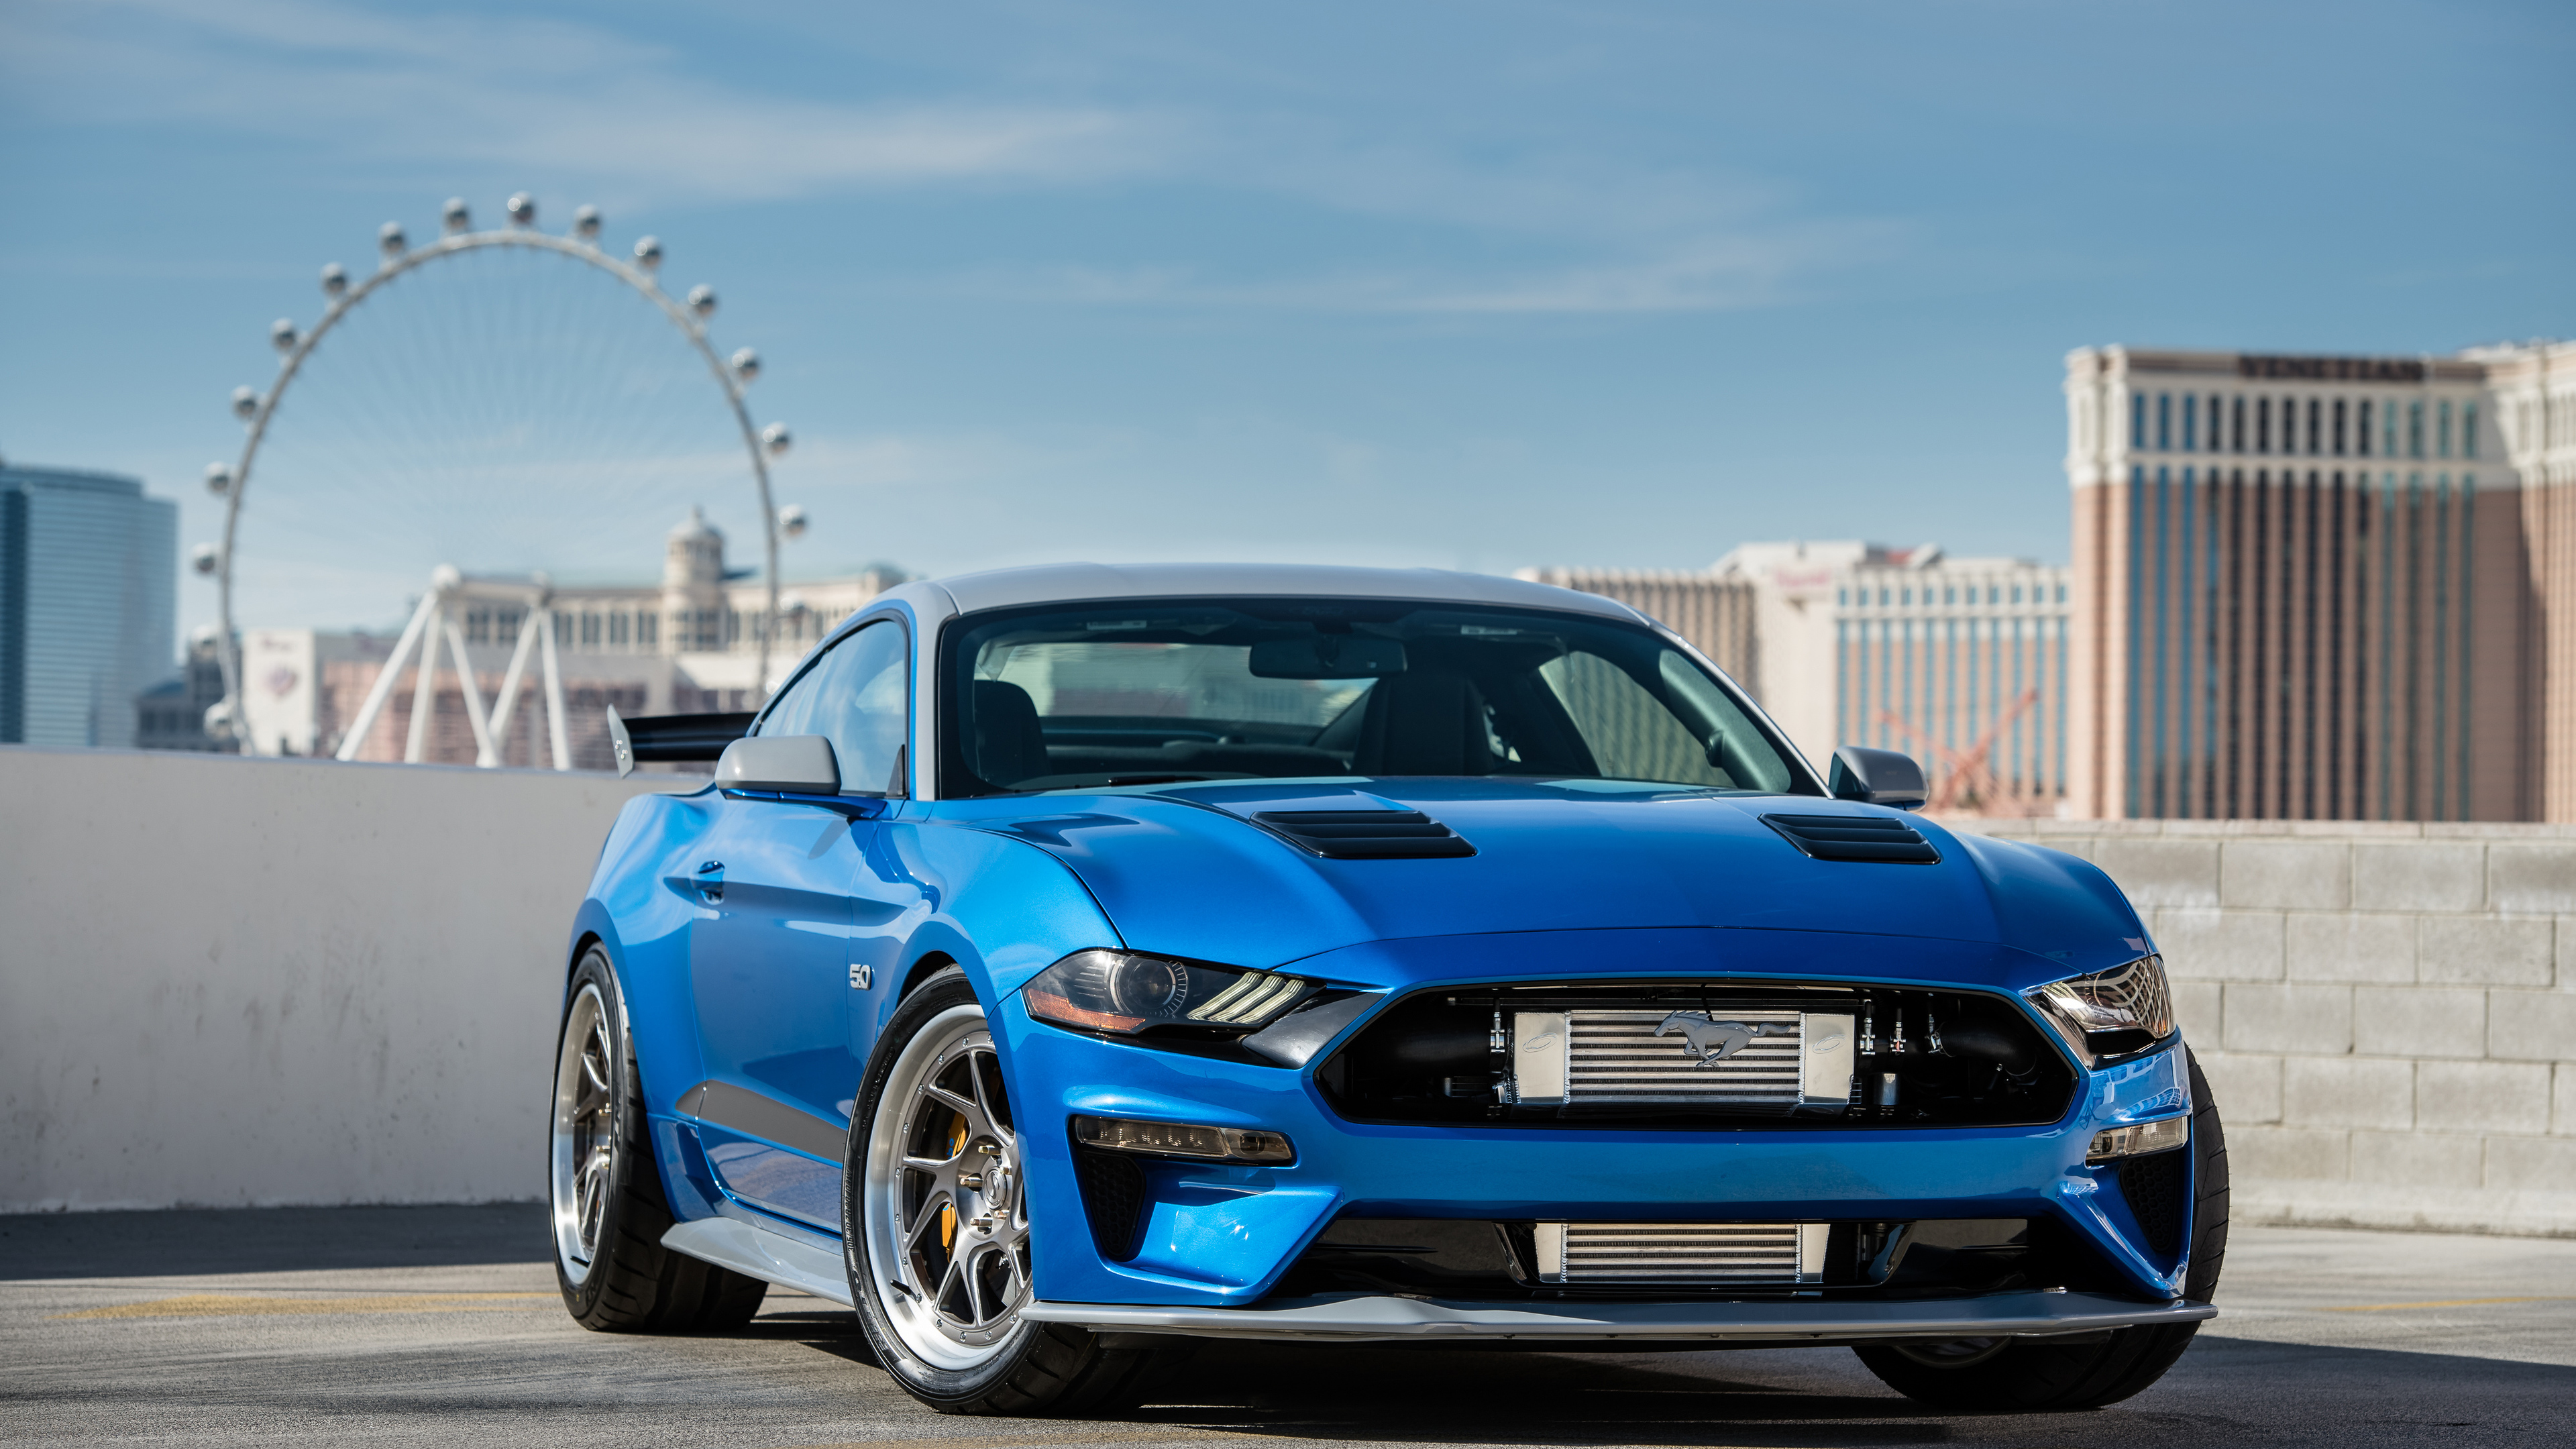 bojix design ford mustang gt 2018 1541969438 - Bojix Design Ford Mustang GT 2018 - mustang wallpapers, hd-wallpapers, ford wallpapers, ford mustang wallpapers, 4k-wallpapers, 2018 cars wallpapers